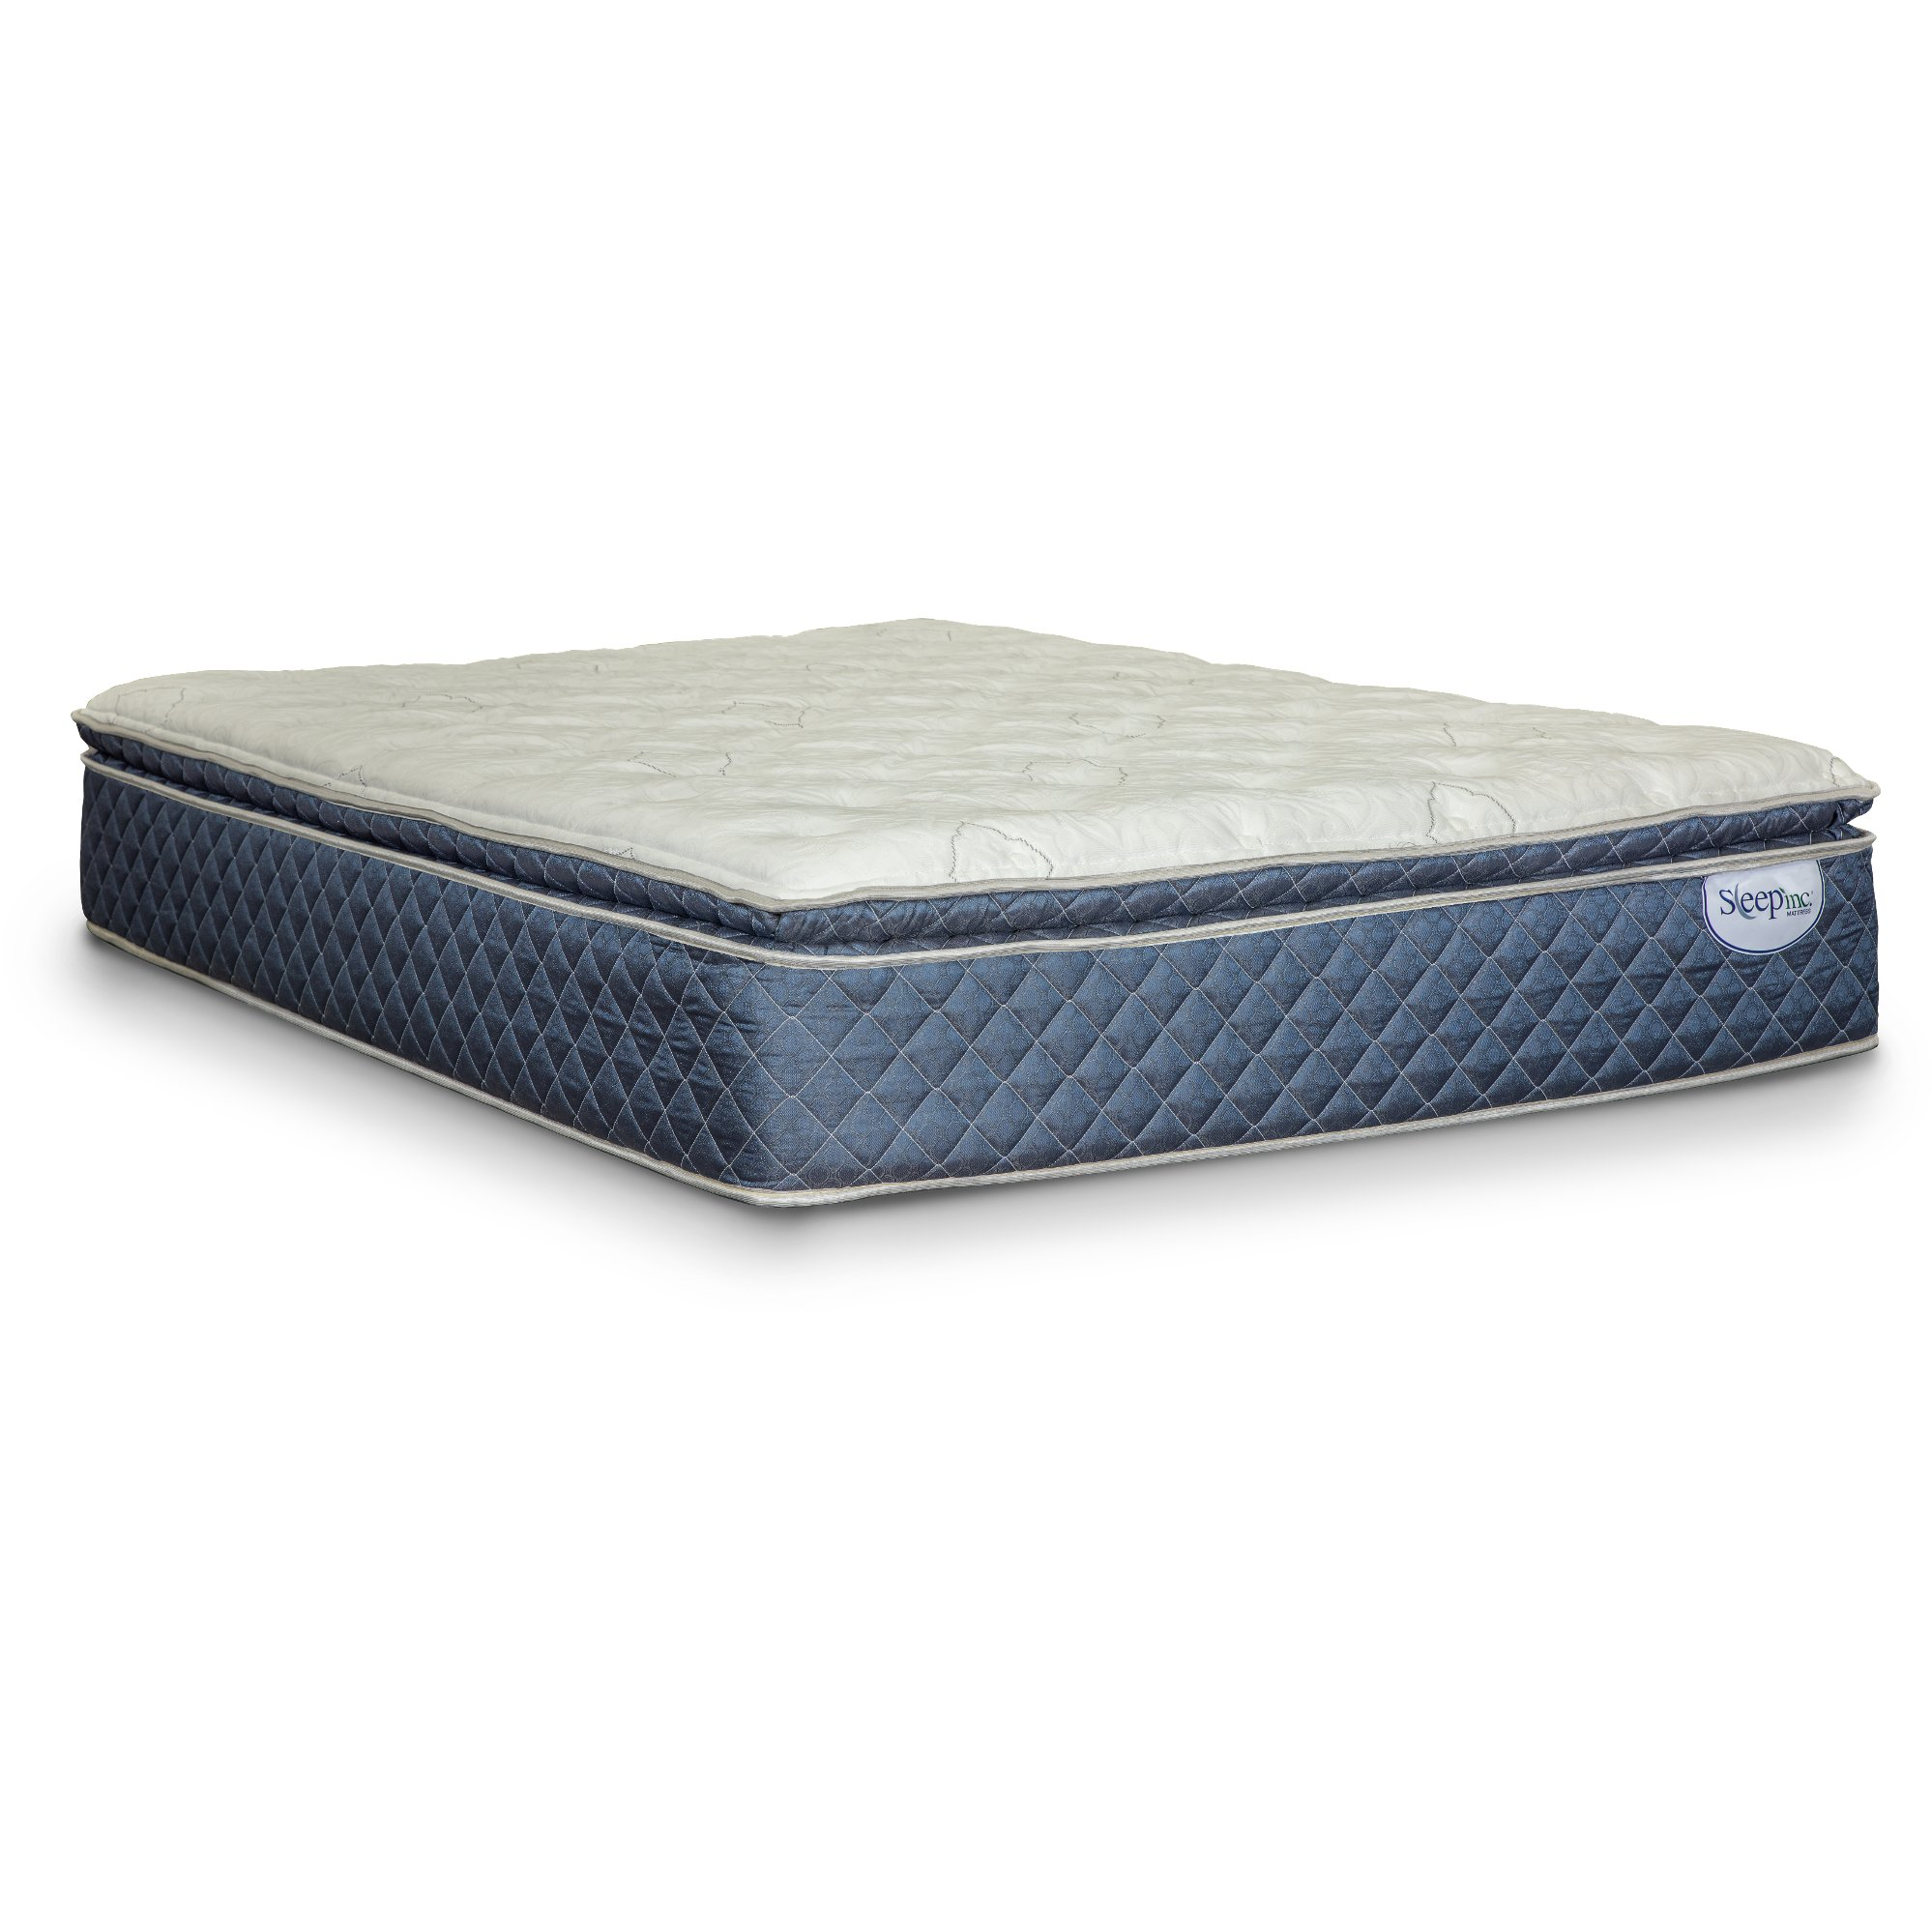 Pillow Top King Mattress Sleep Inc Pillow Top King Size Mattress Gabrielle